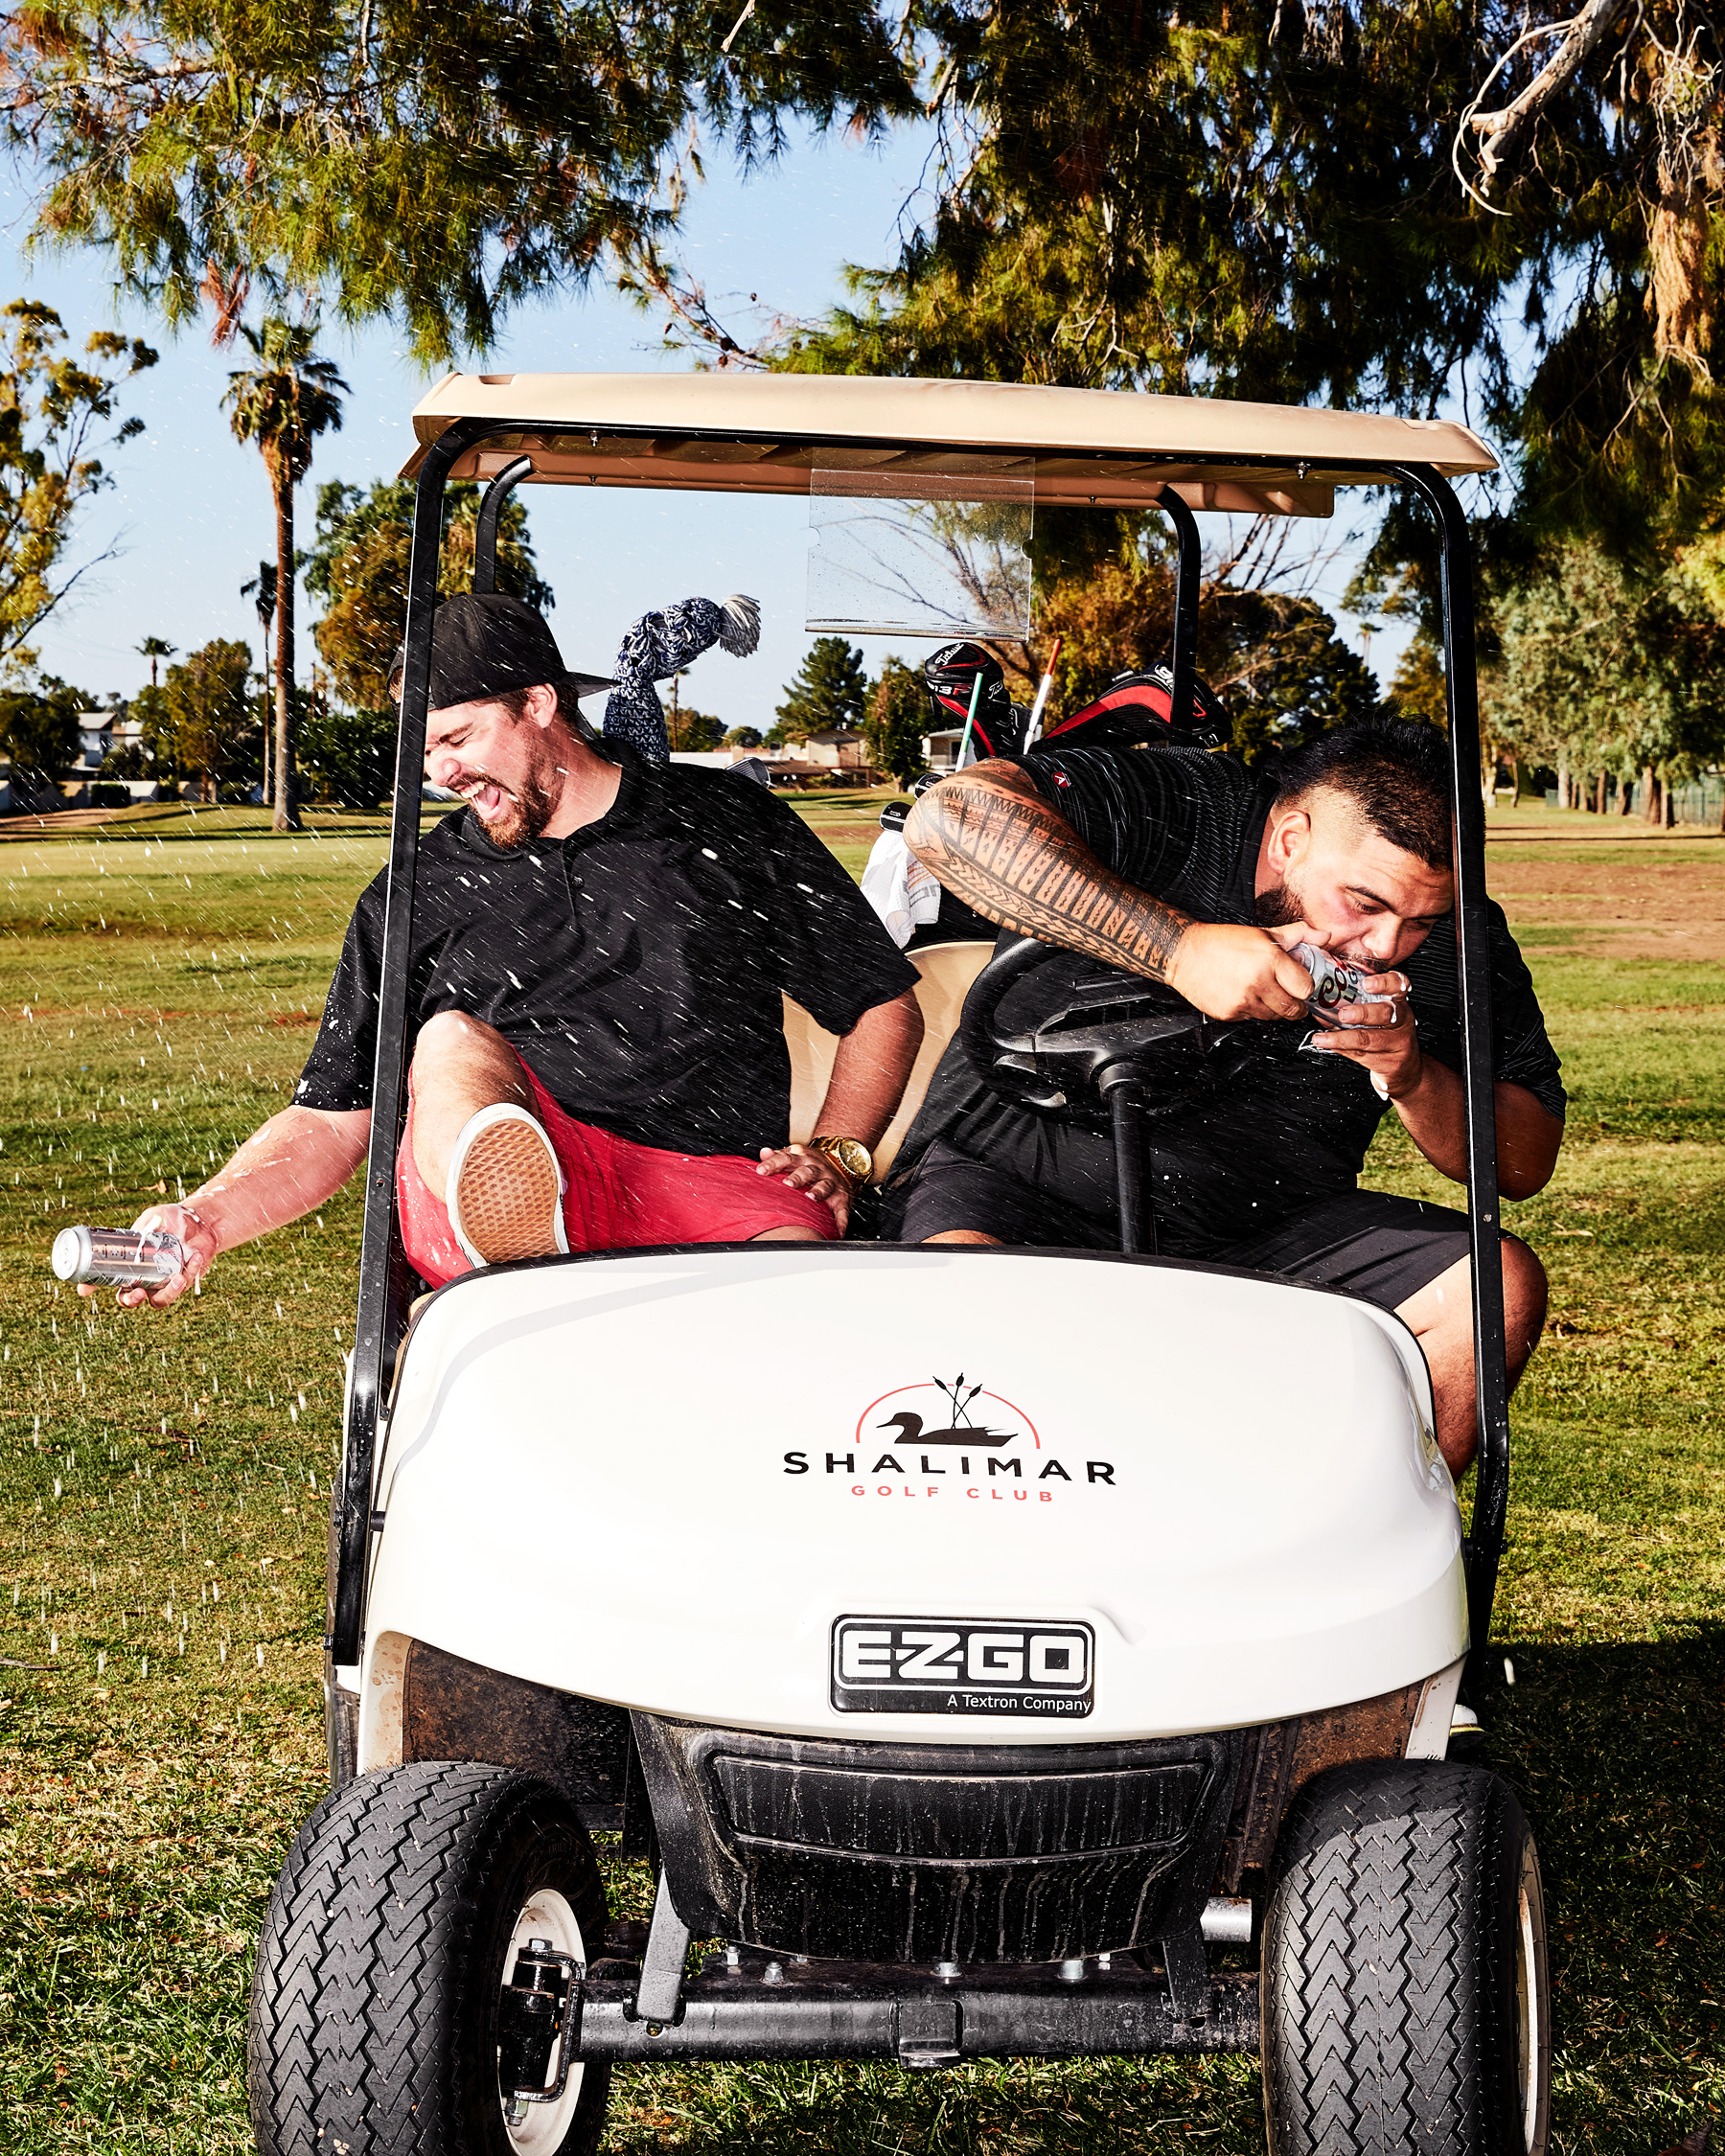 Shalimar Country Club -Stephen Denton Photography -  Los Angeles, California based  Commercial Photographer